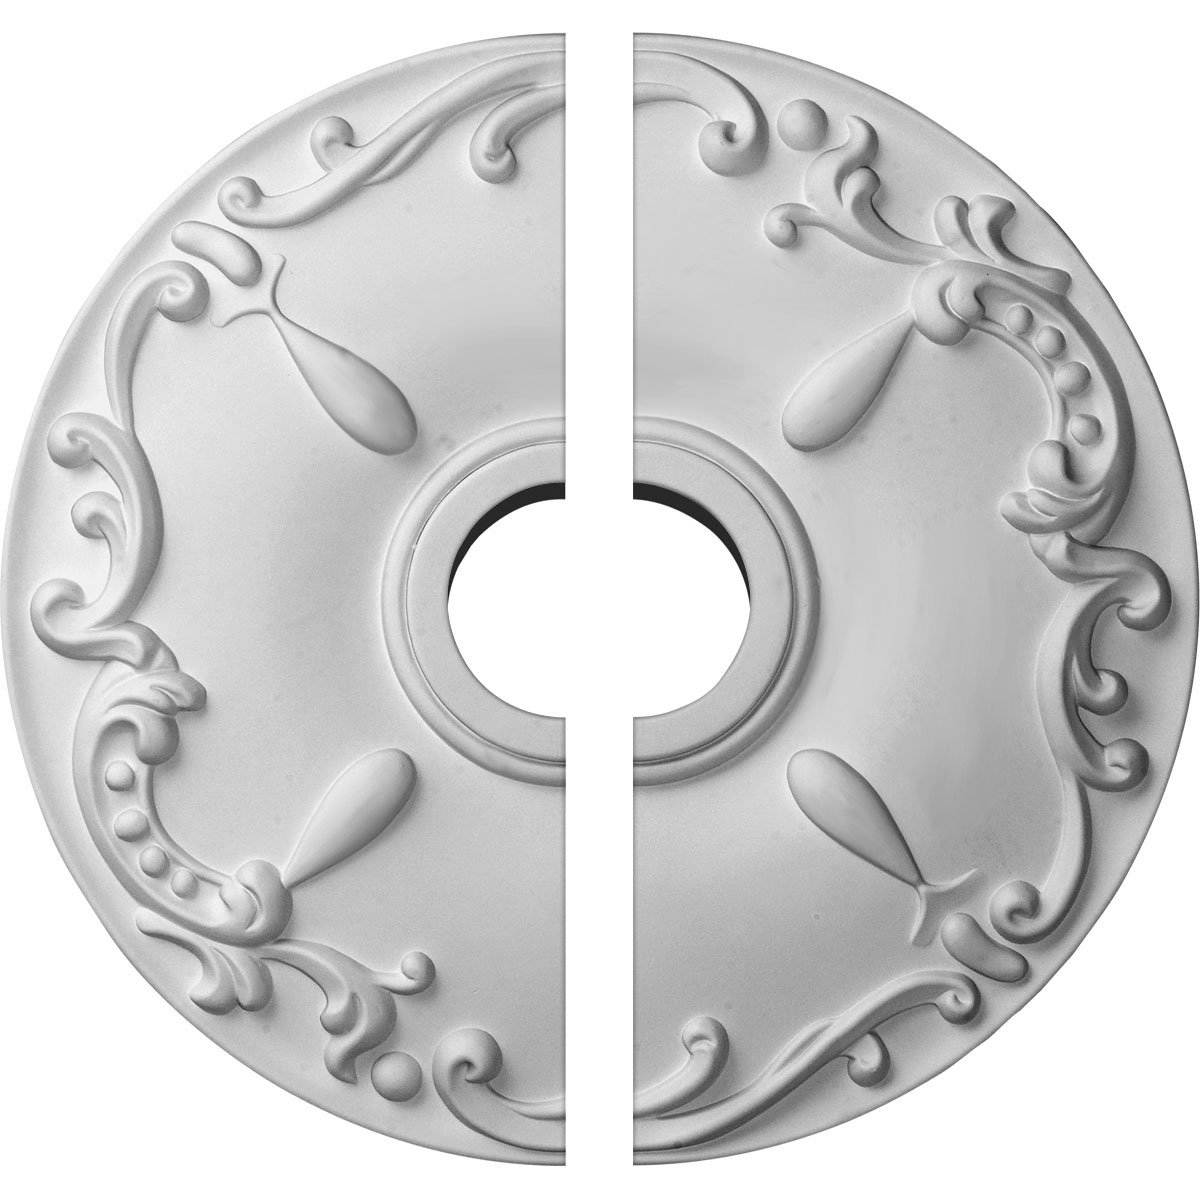 Ekena Millwork CM18KE2 18''OD x 3 1/2''ID x 1 1/4''P Kent Ceiling Medallion, Two Piece (Fits Canopies up to 5''), Factory Primed and Ready to Paint